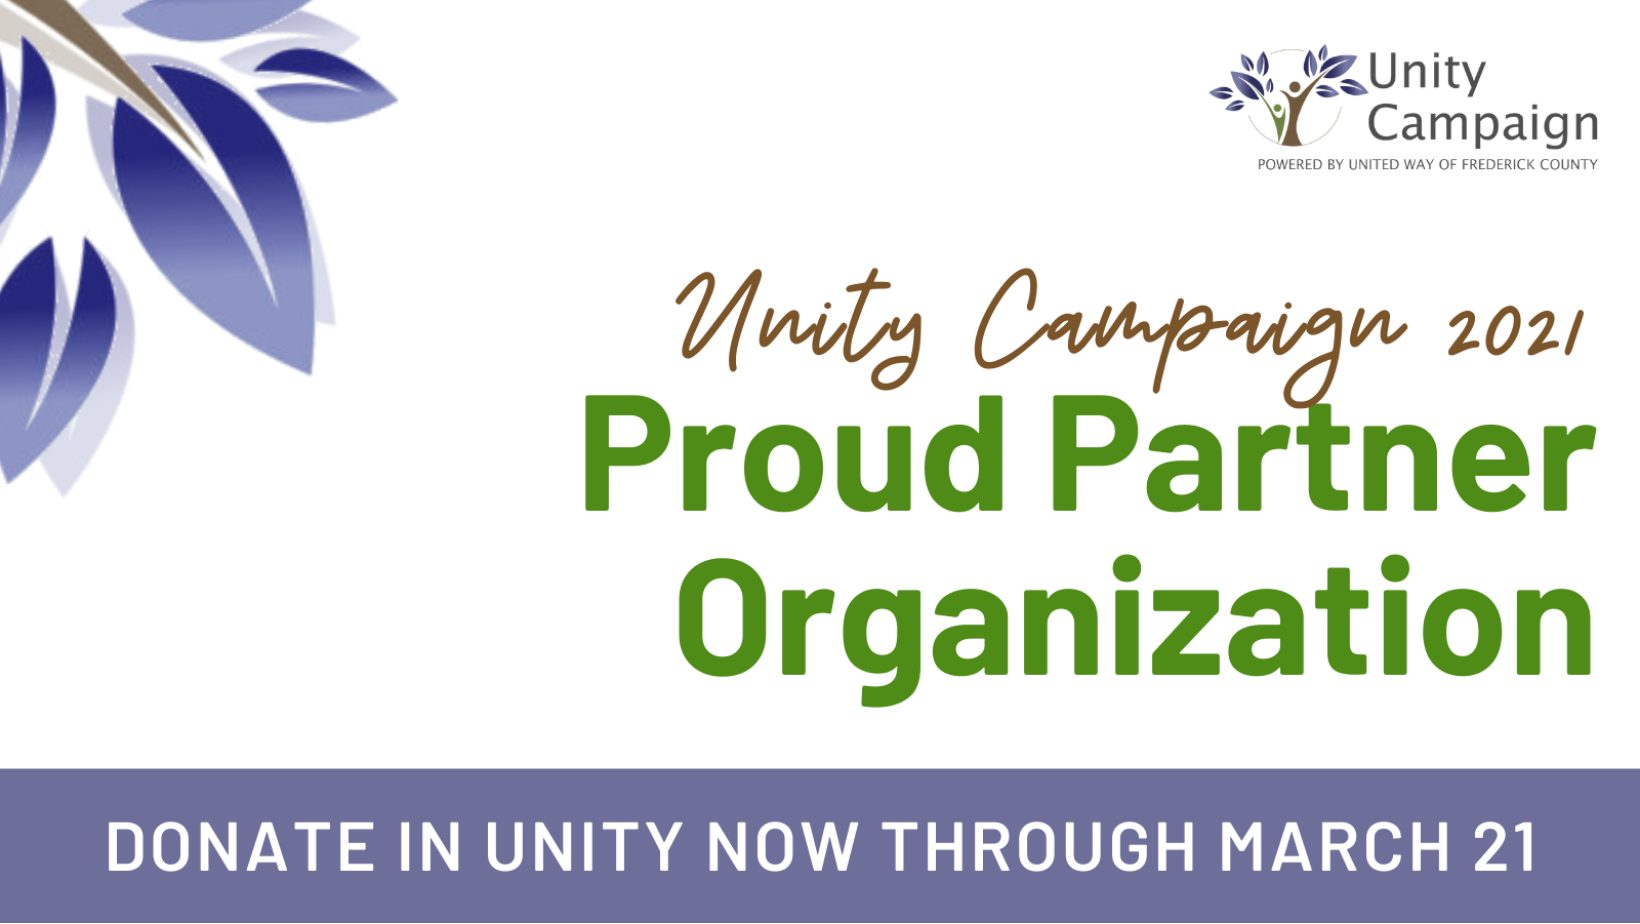 The Unity Campaign for Frederick County